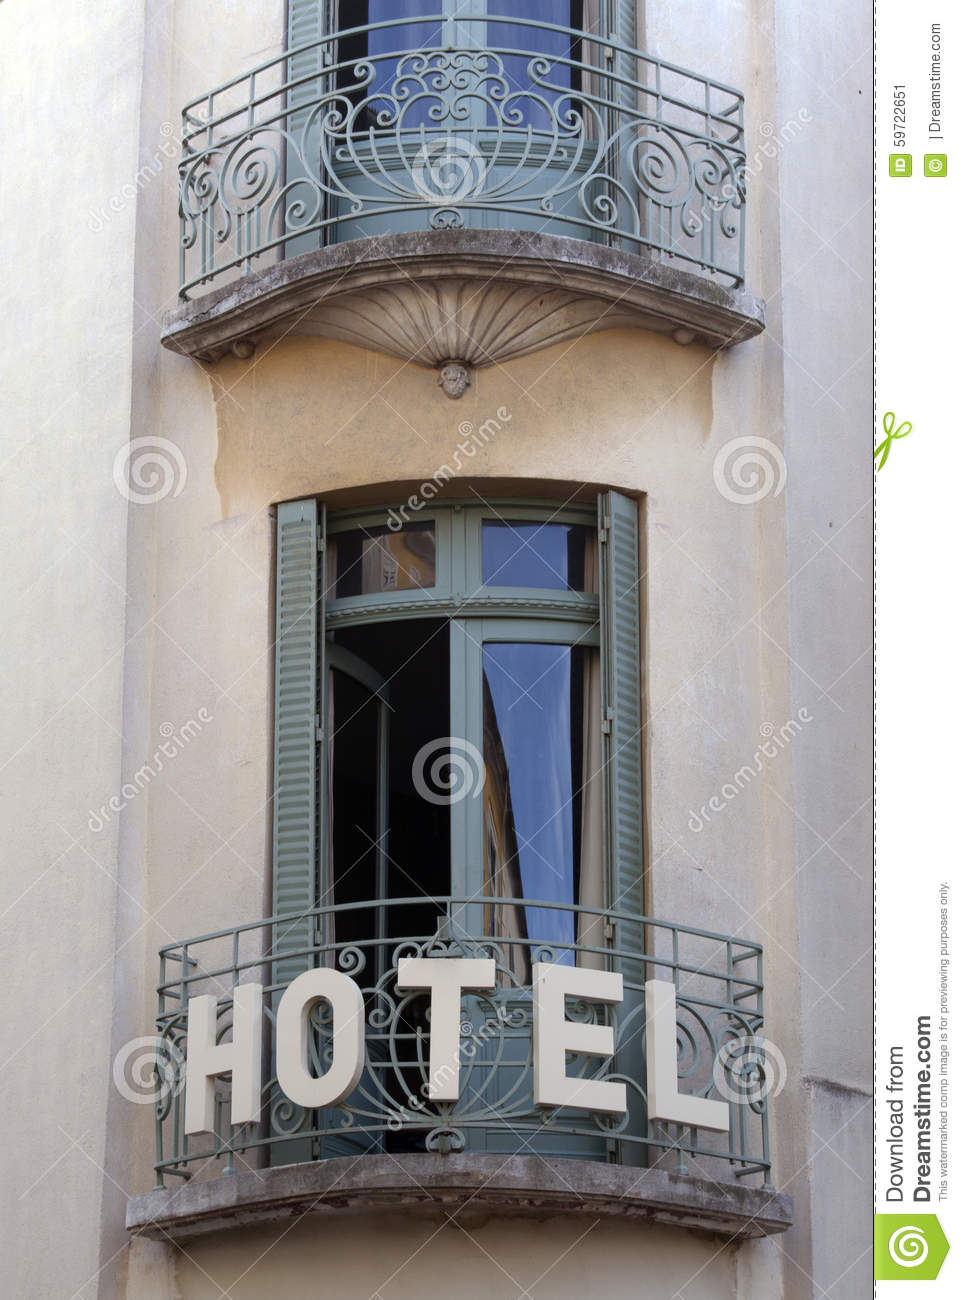 French hotel with balcony and doors in paris france for Balcony french